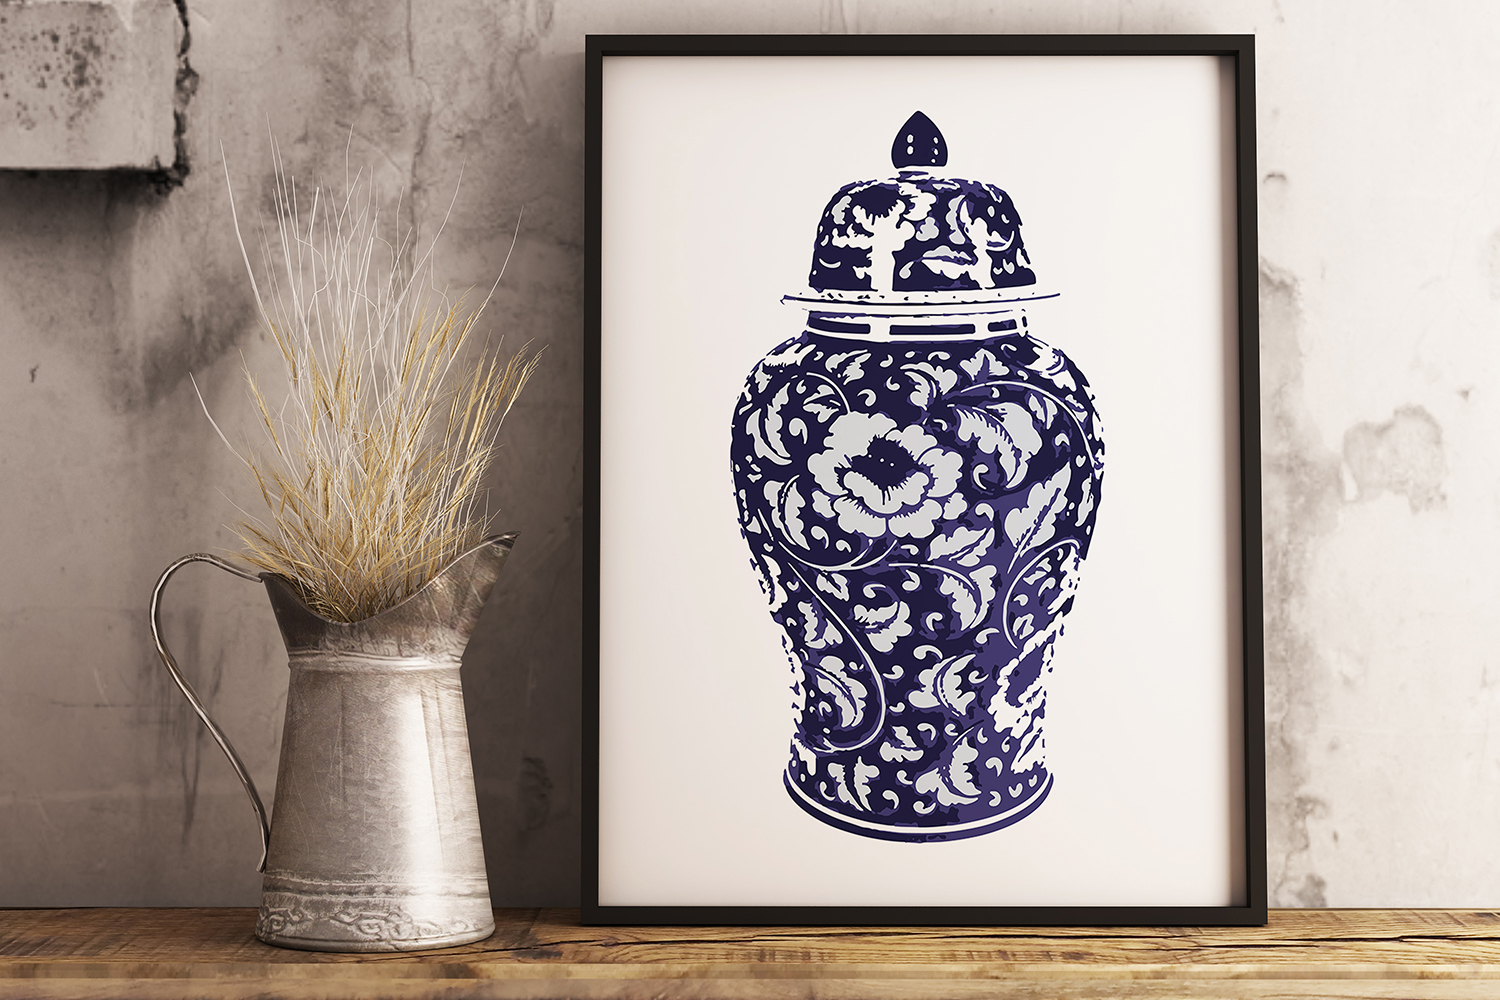 Indigo Blue and White Printable Kitchen Ginger Jar Wall Art example image 4